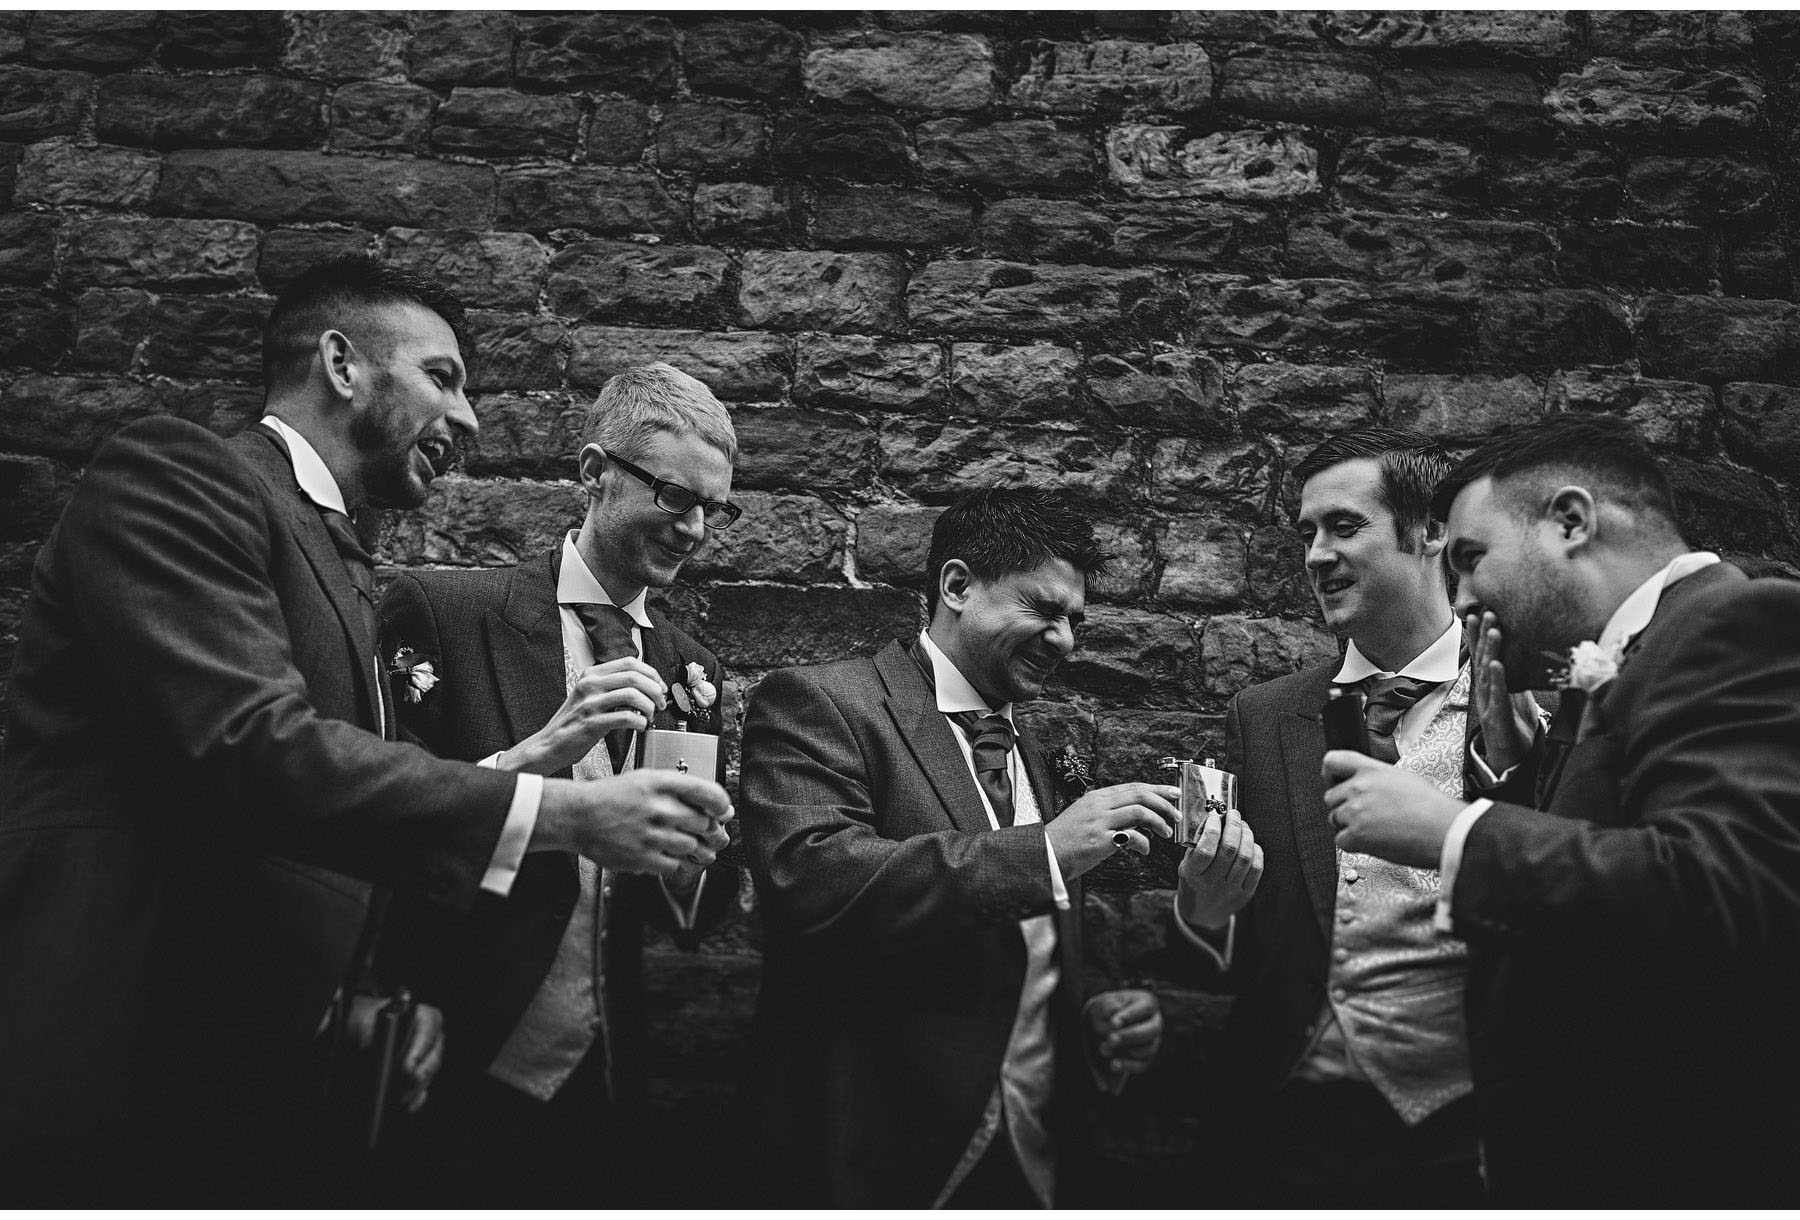 the groom and his men with hip flasks